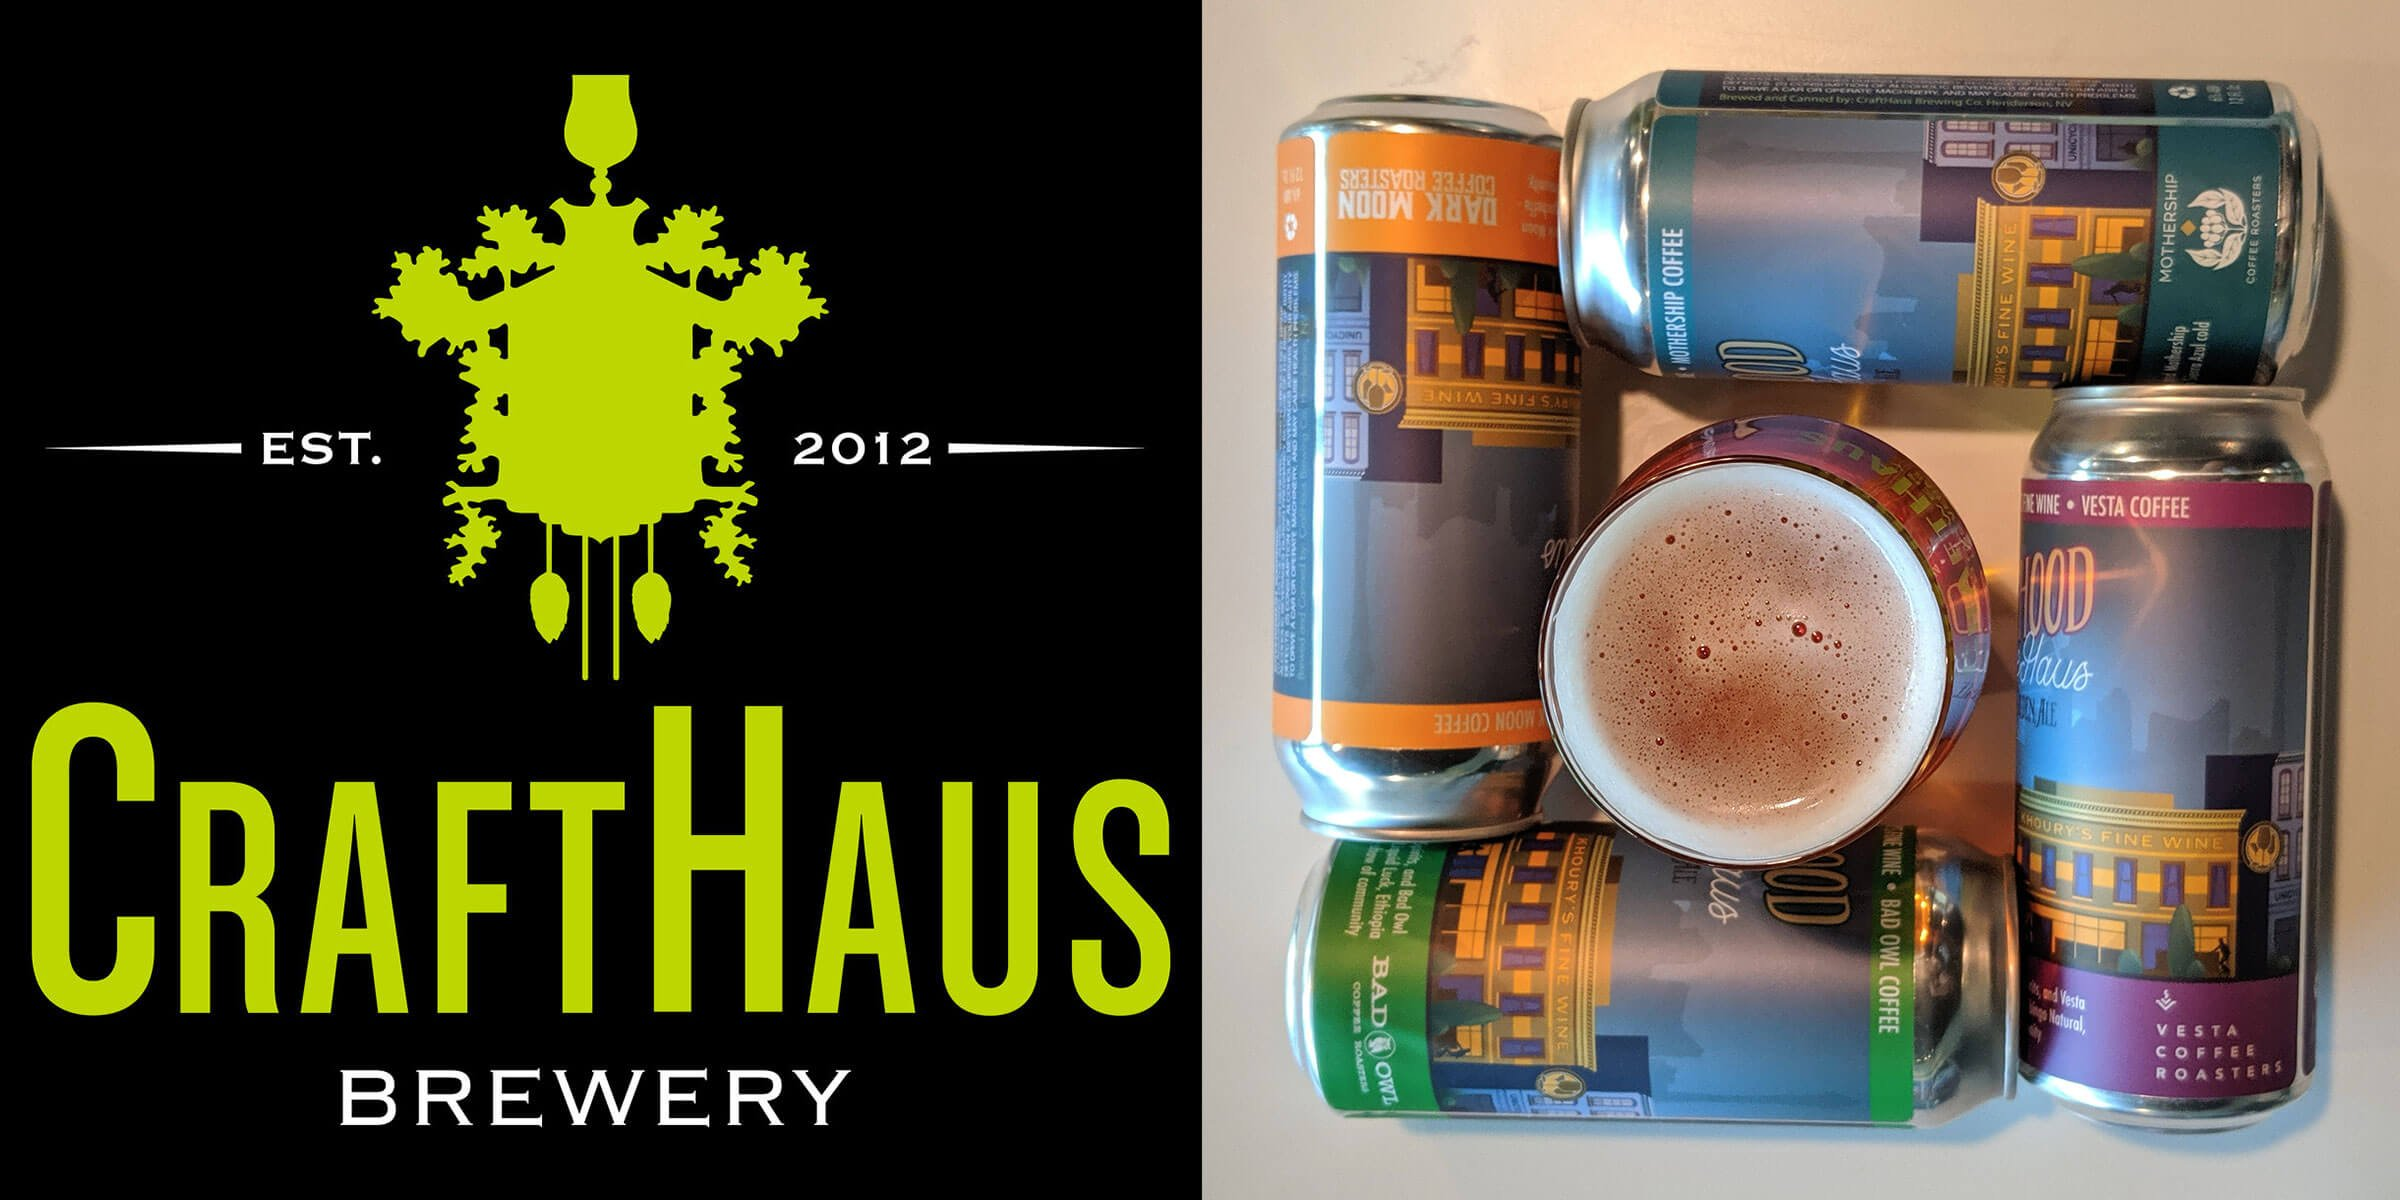 CraftHaus Brewery is releasing a mixed pack featuring cold brews fron four local coffee roasters infused into the Neighborhood CoffeeHaus Golden Ale.